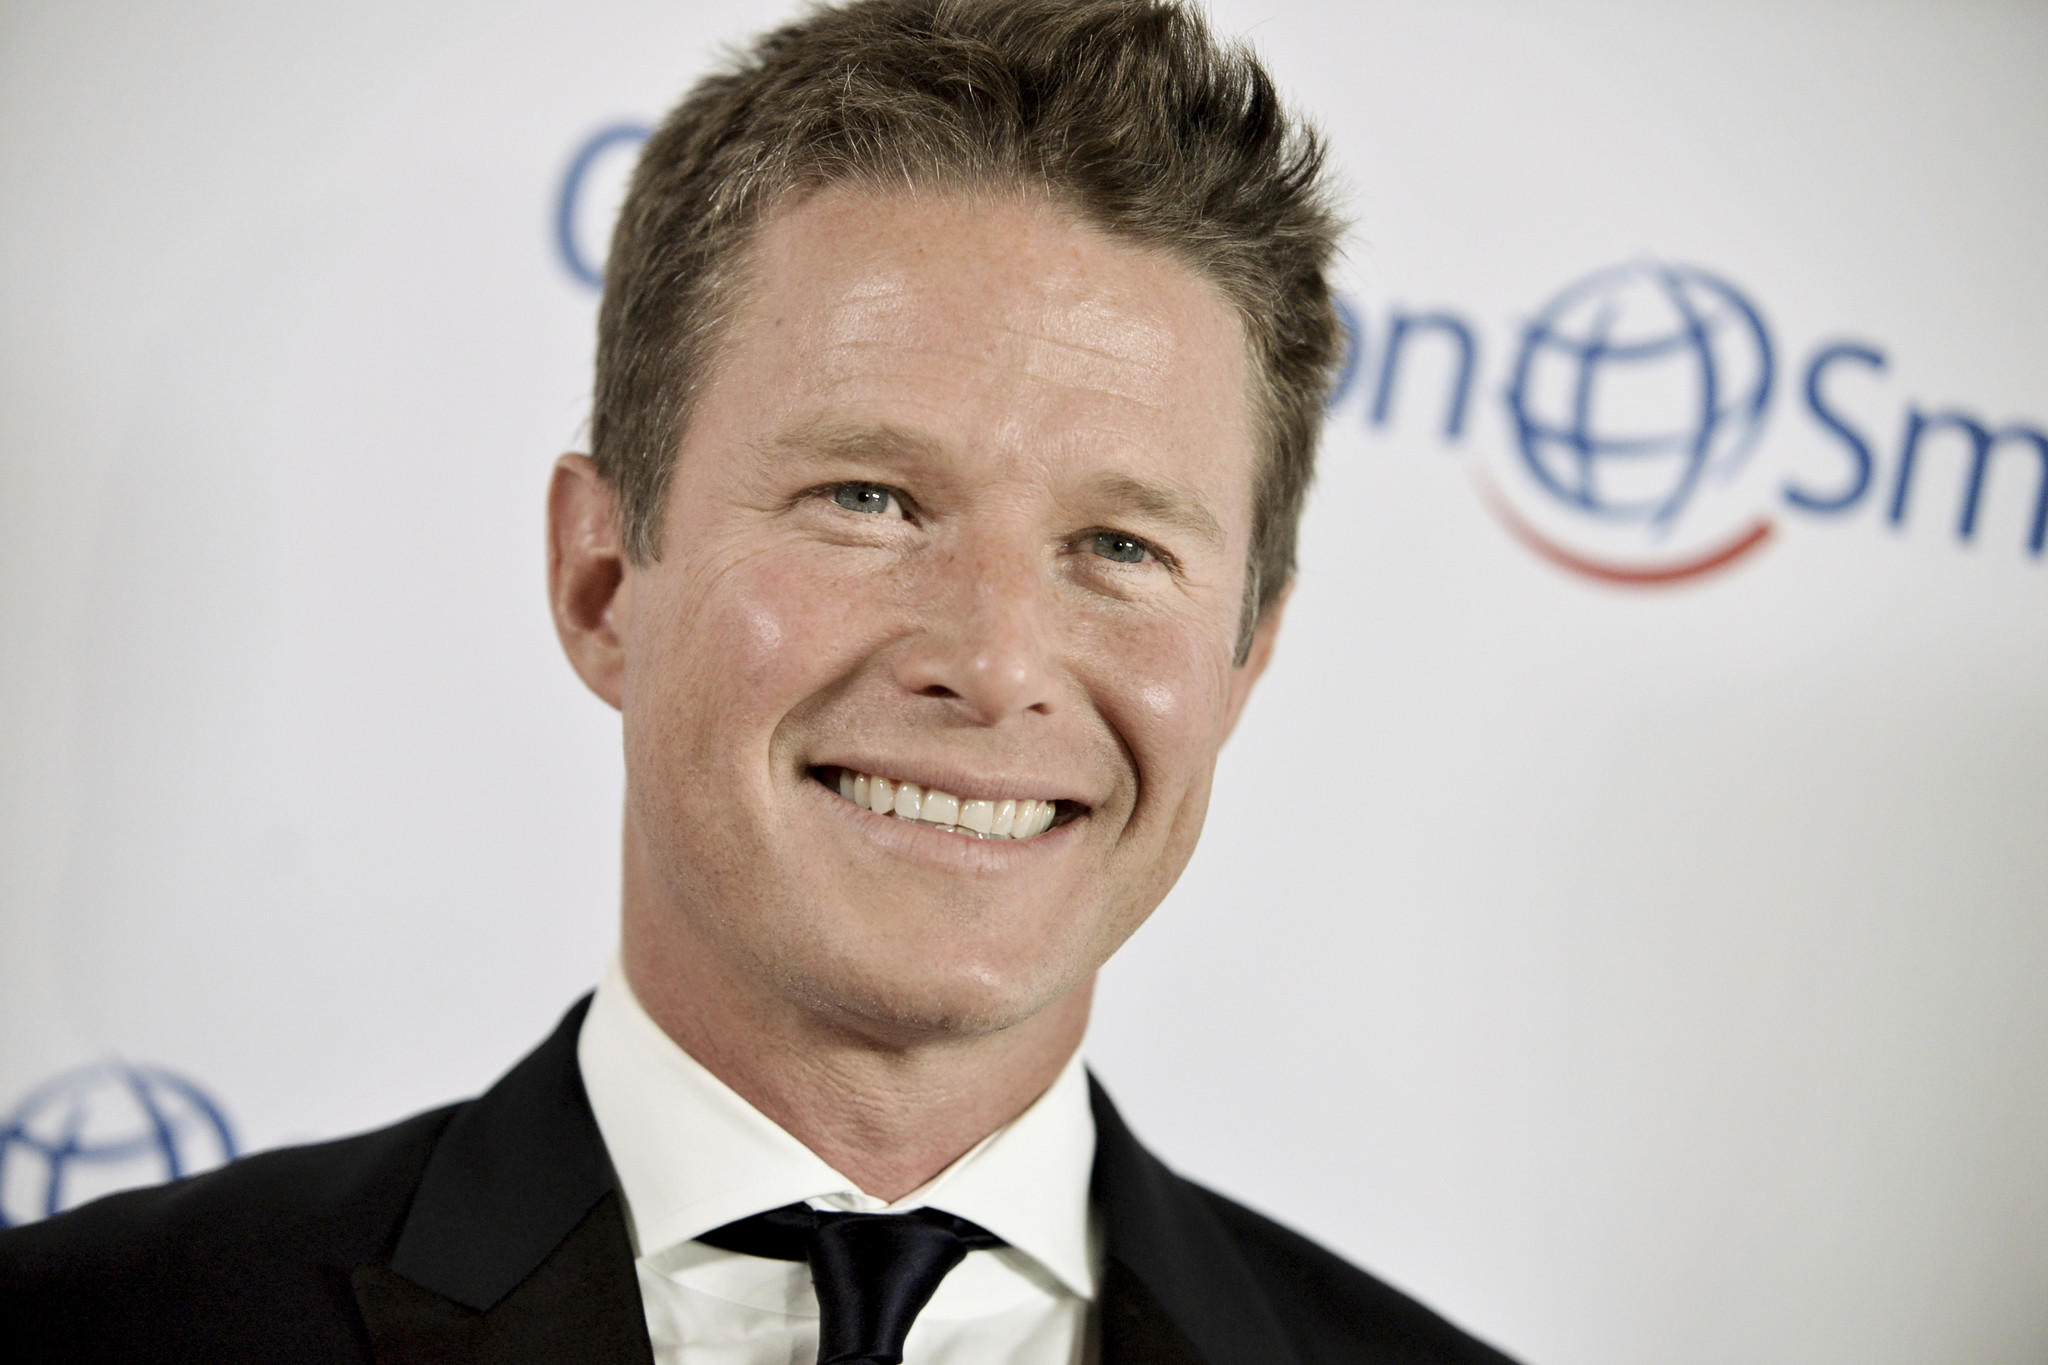 Billy Bush, wife Sydney Davis separate after almost 20 years of marriage